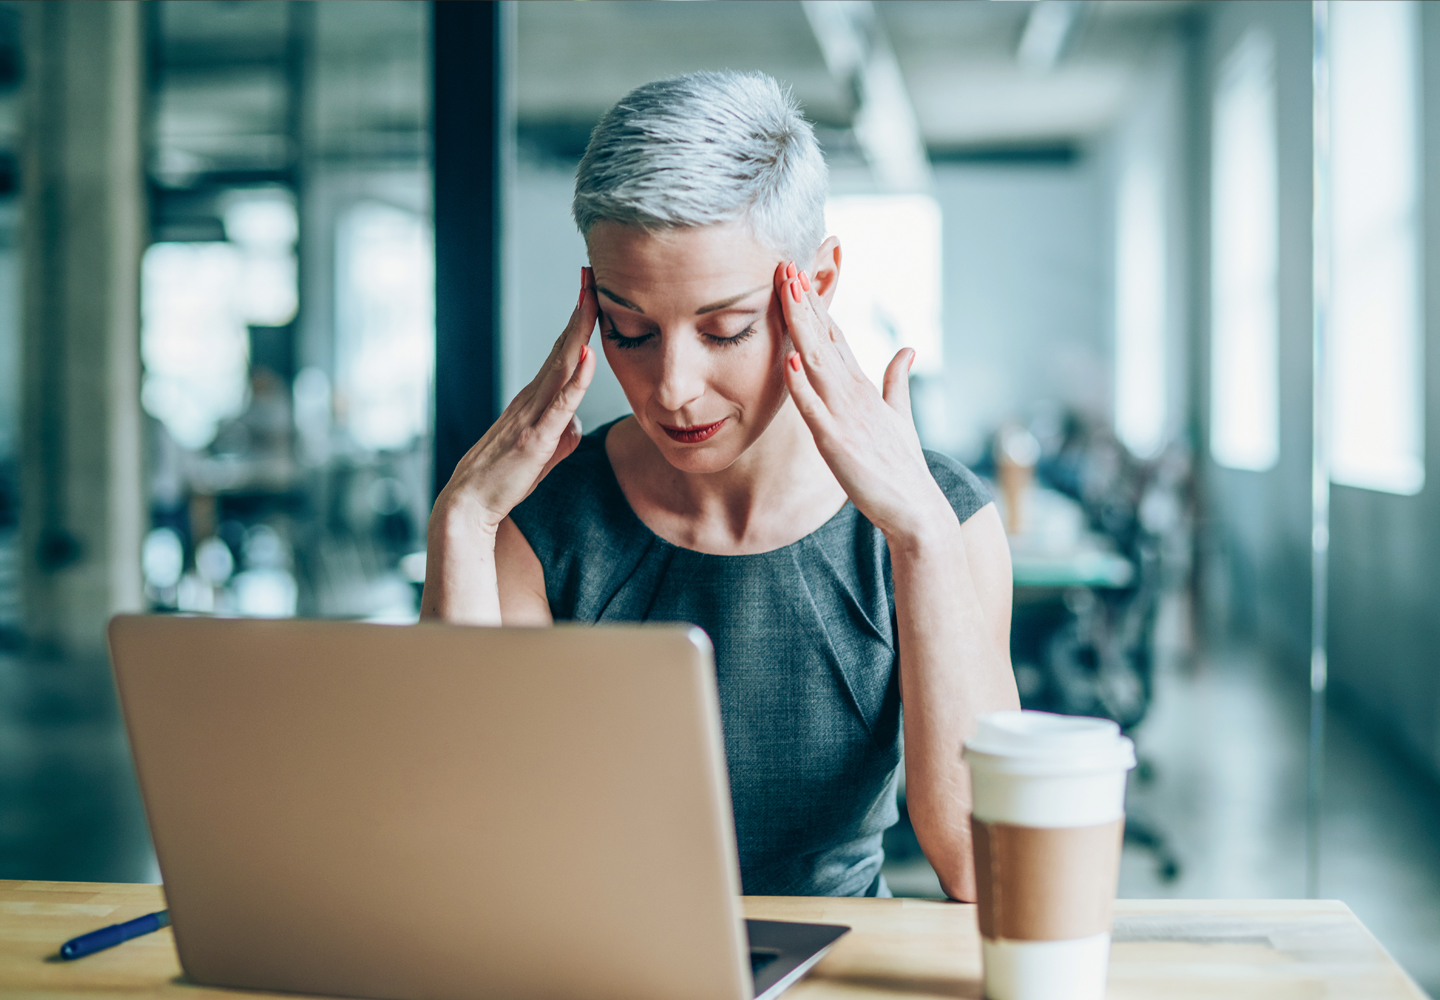 Stressed businesswoman with headache in the office